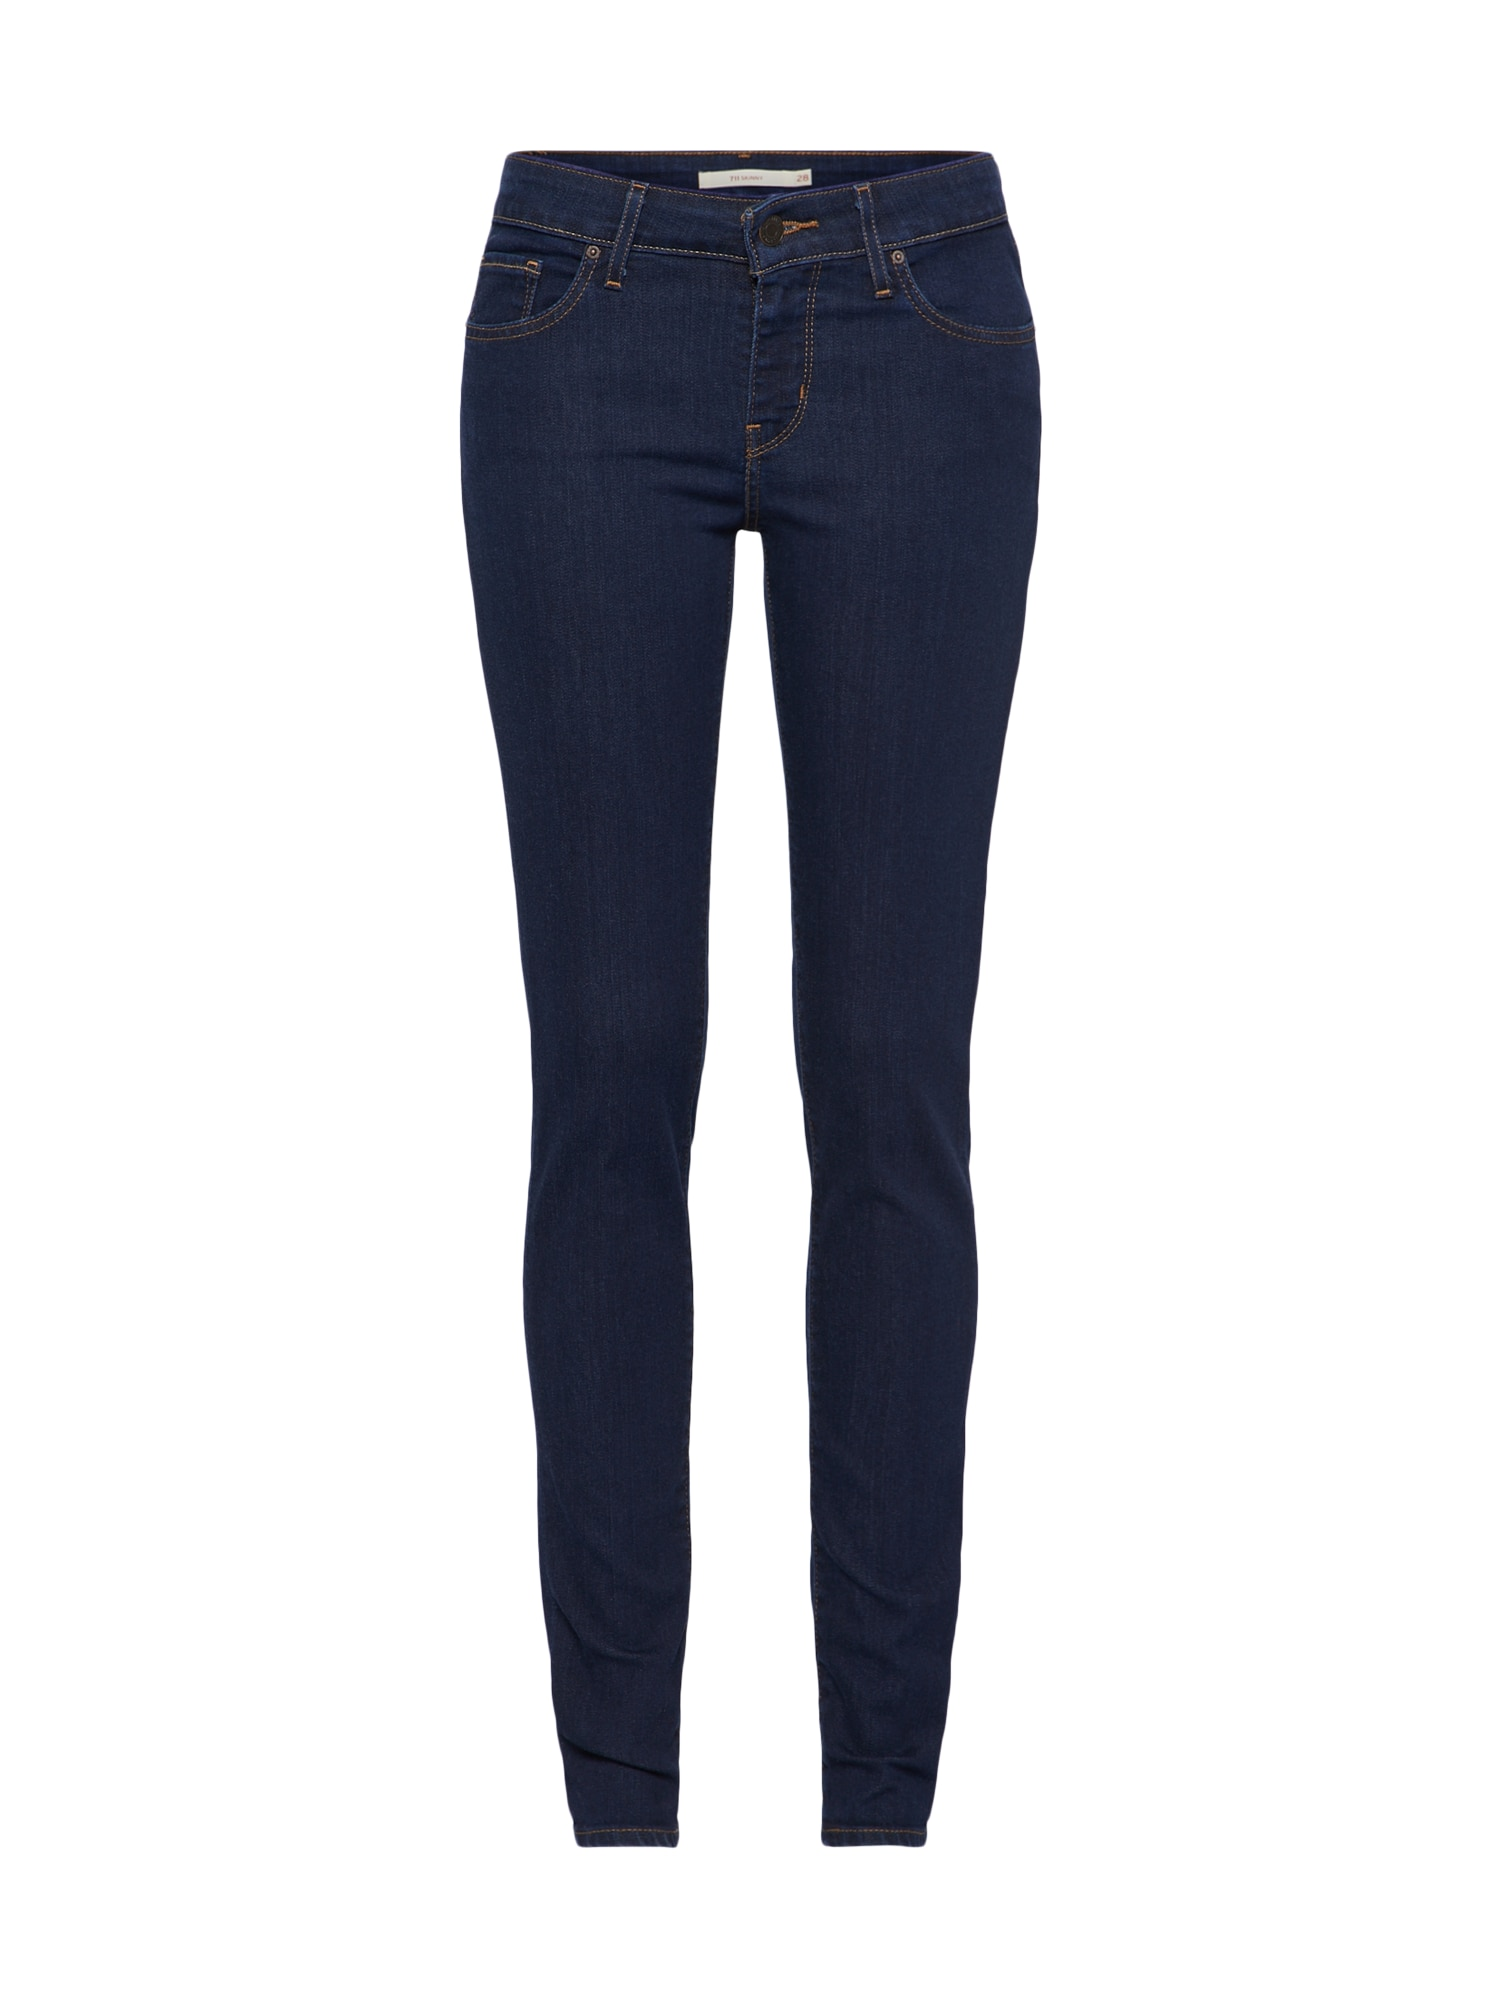 LEVI'S Dames Jeans 711 donkerblauw